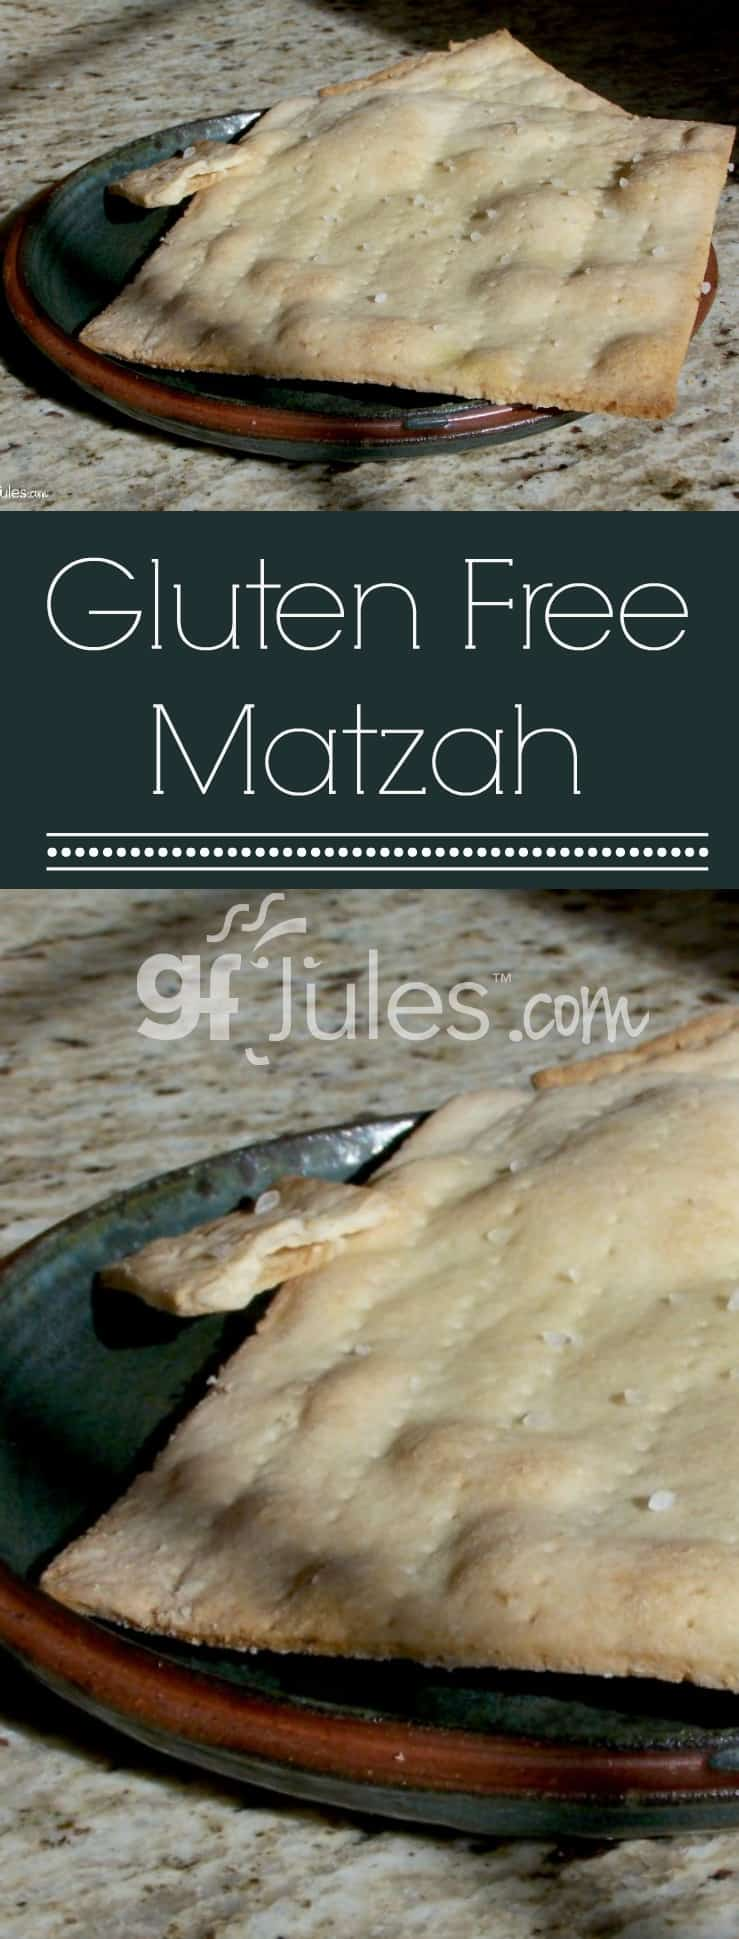 Preparing for Passover? Try this Gluten Free Matzo recipe. These great saltine-like crackers are wonderful for Jewish holidays or any time of year! gfjules.com